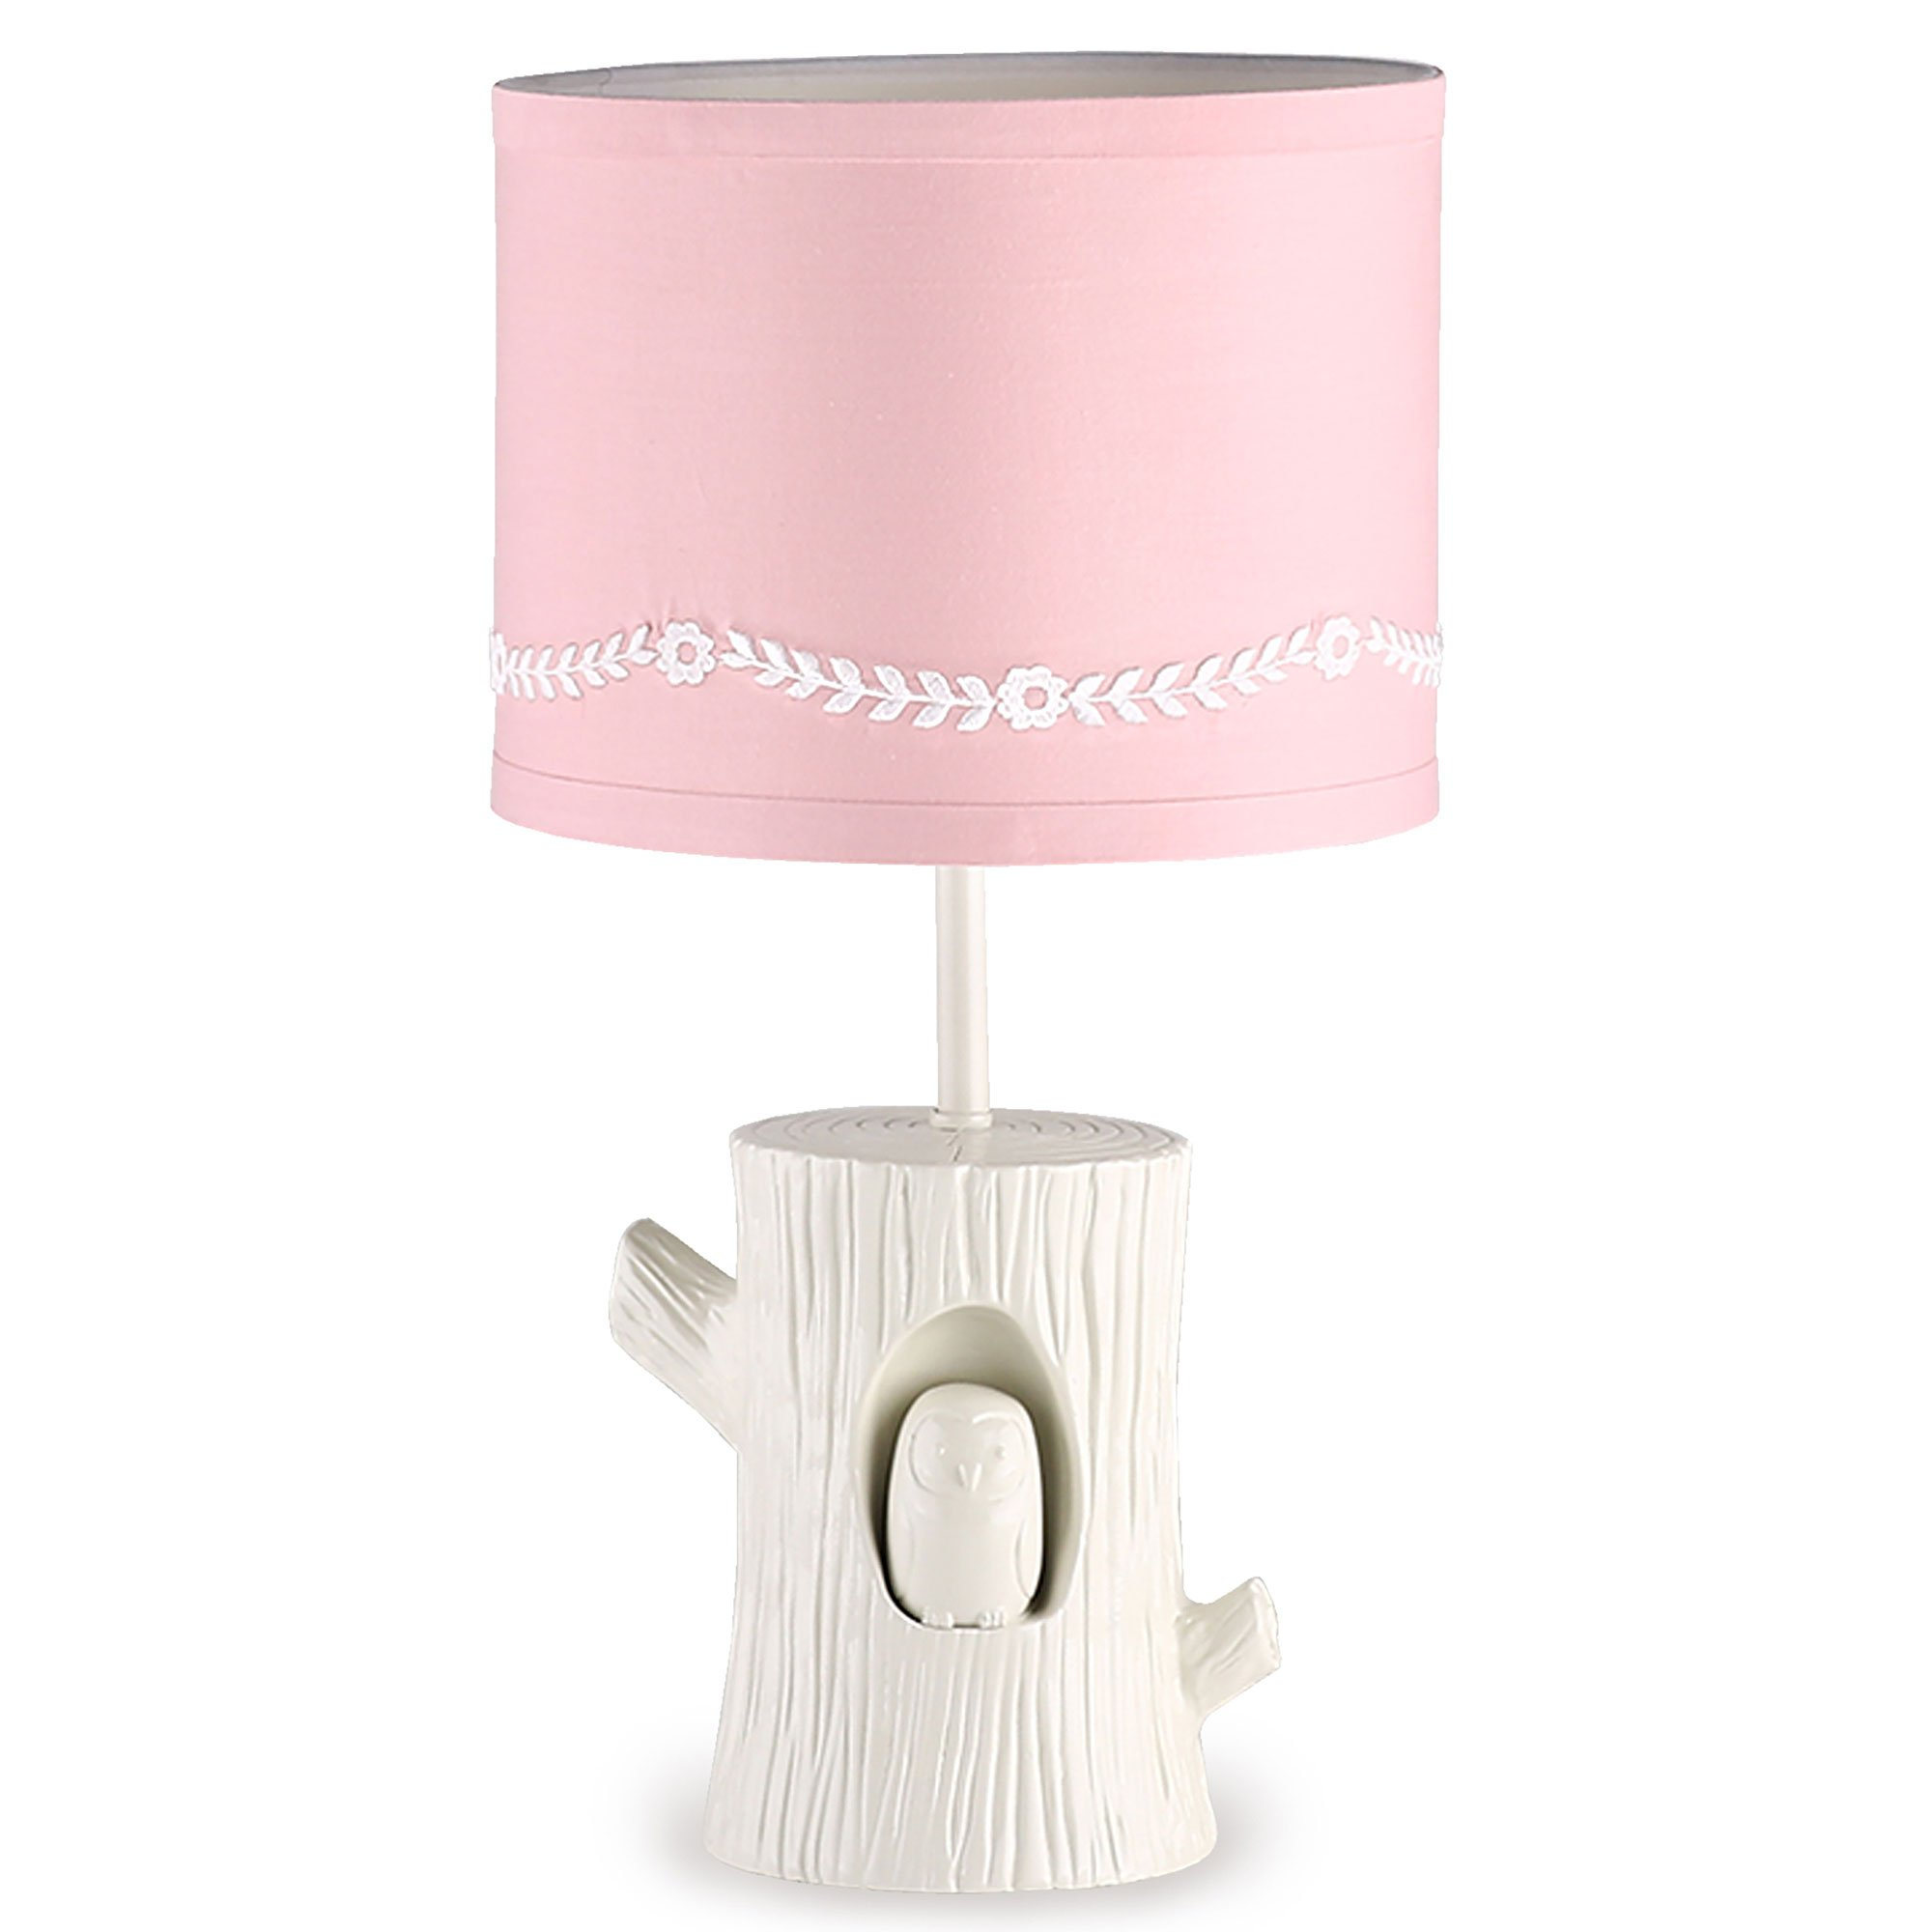 Woodland Whimsy Lamp Base and Shade by The Peanut Shell